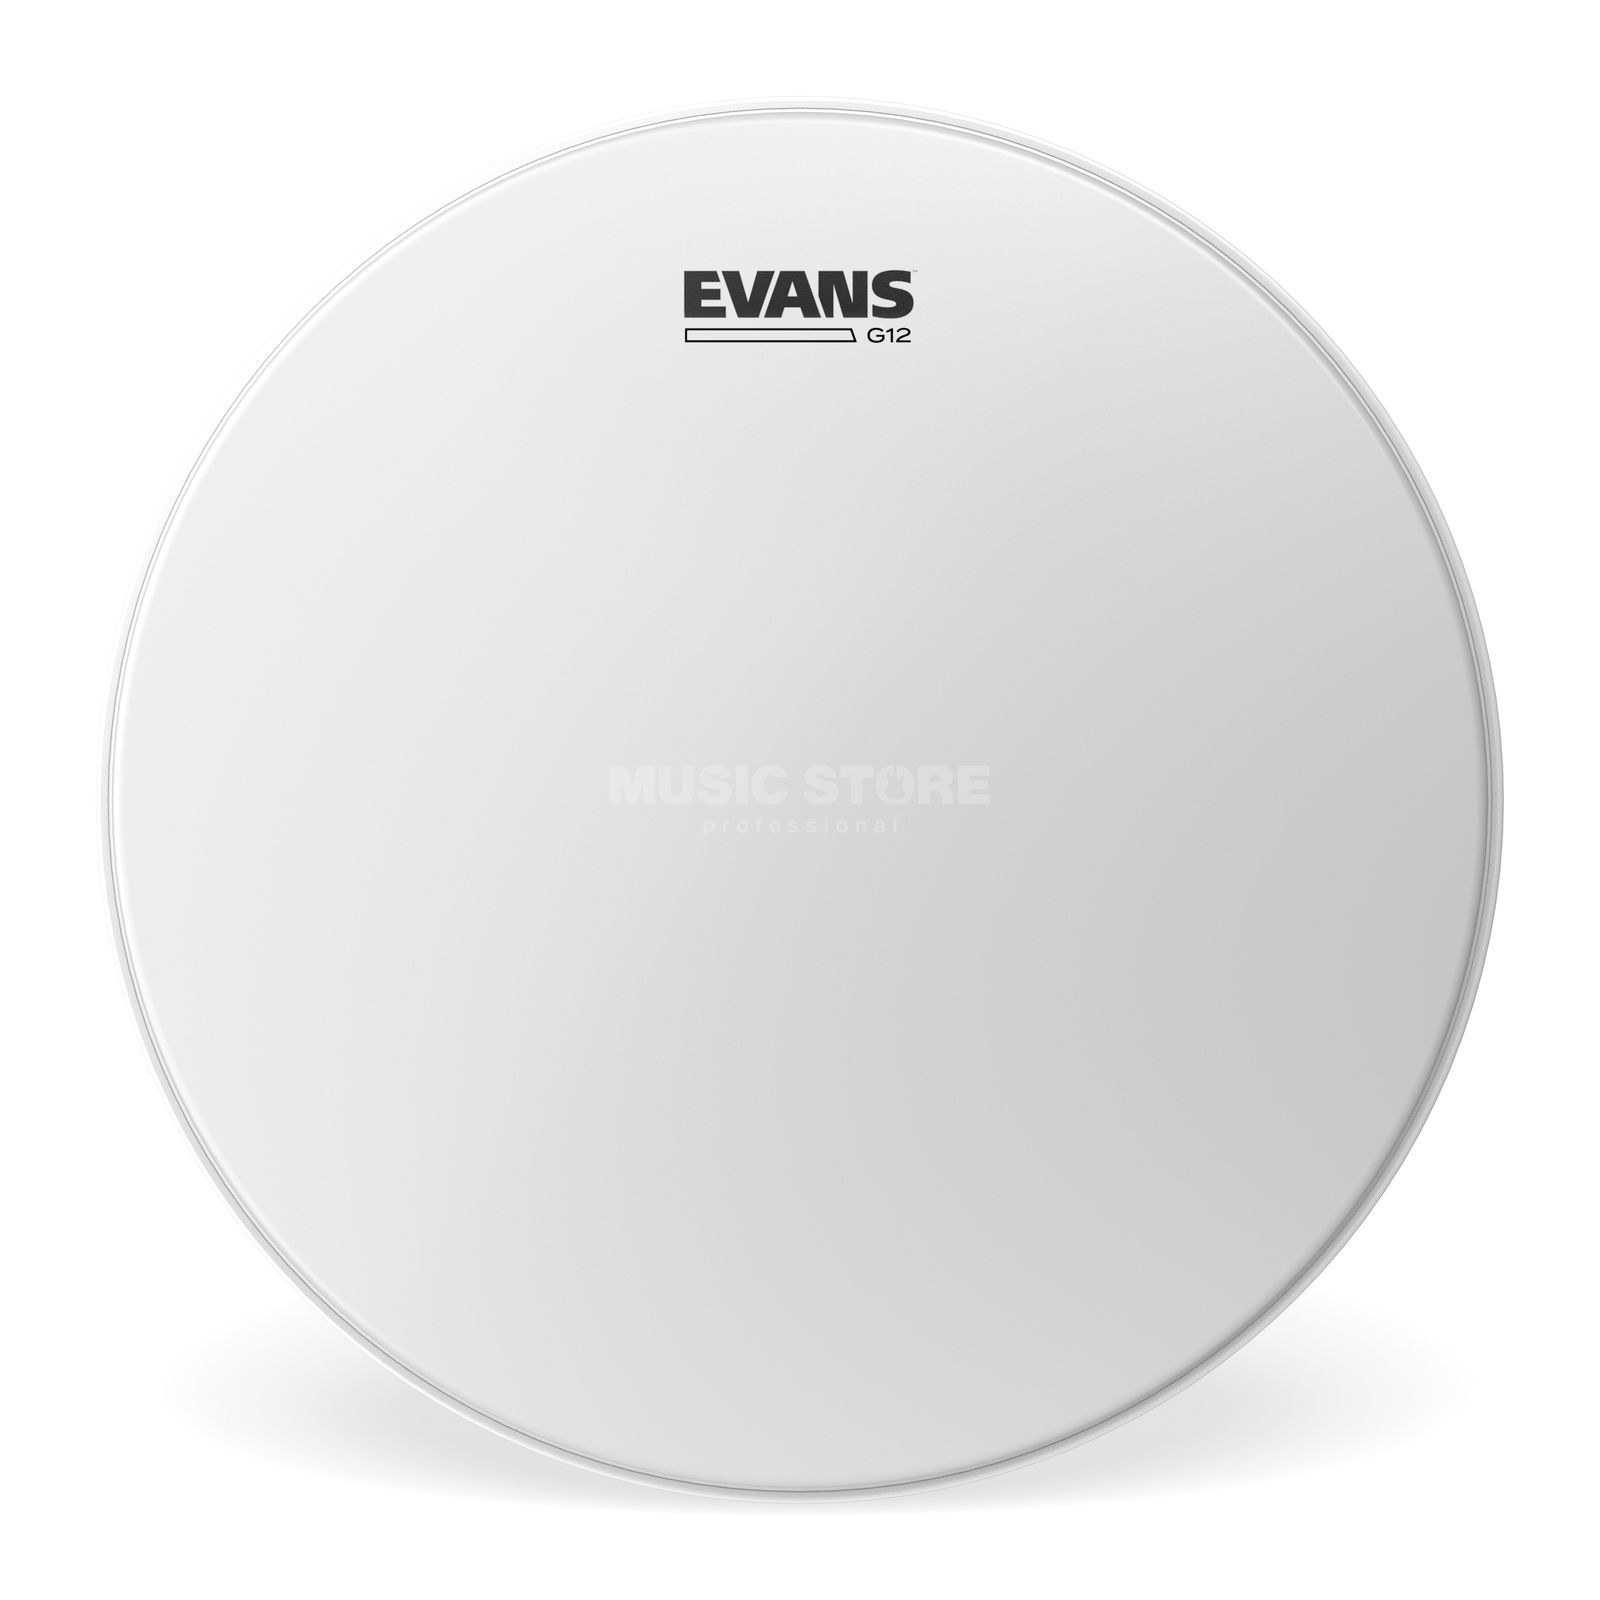 "Evans G12 10"" coated, B10G12, Tom Batter Produktbild"